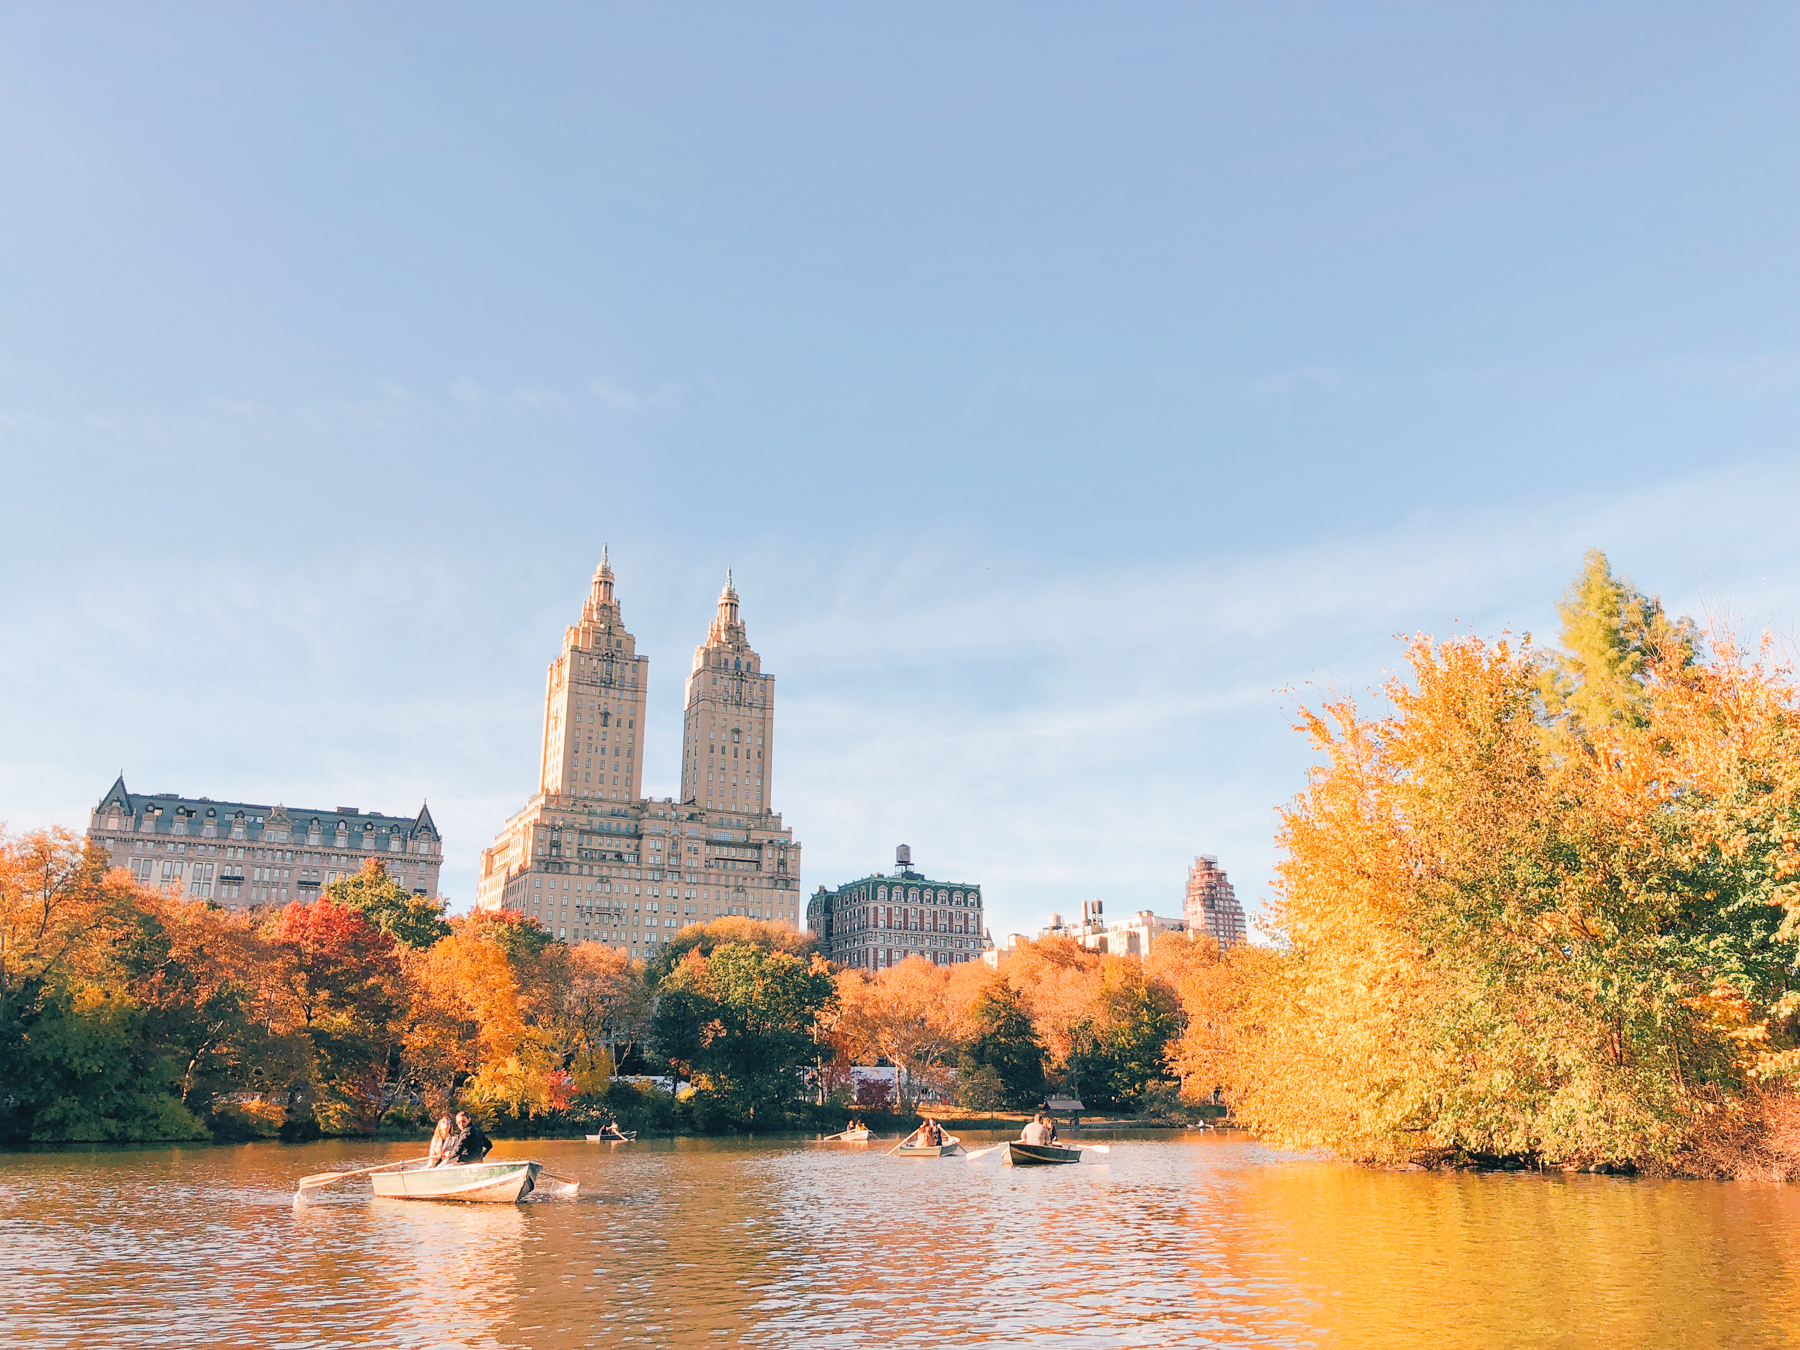 Central Park, view of the San Remo from the boat